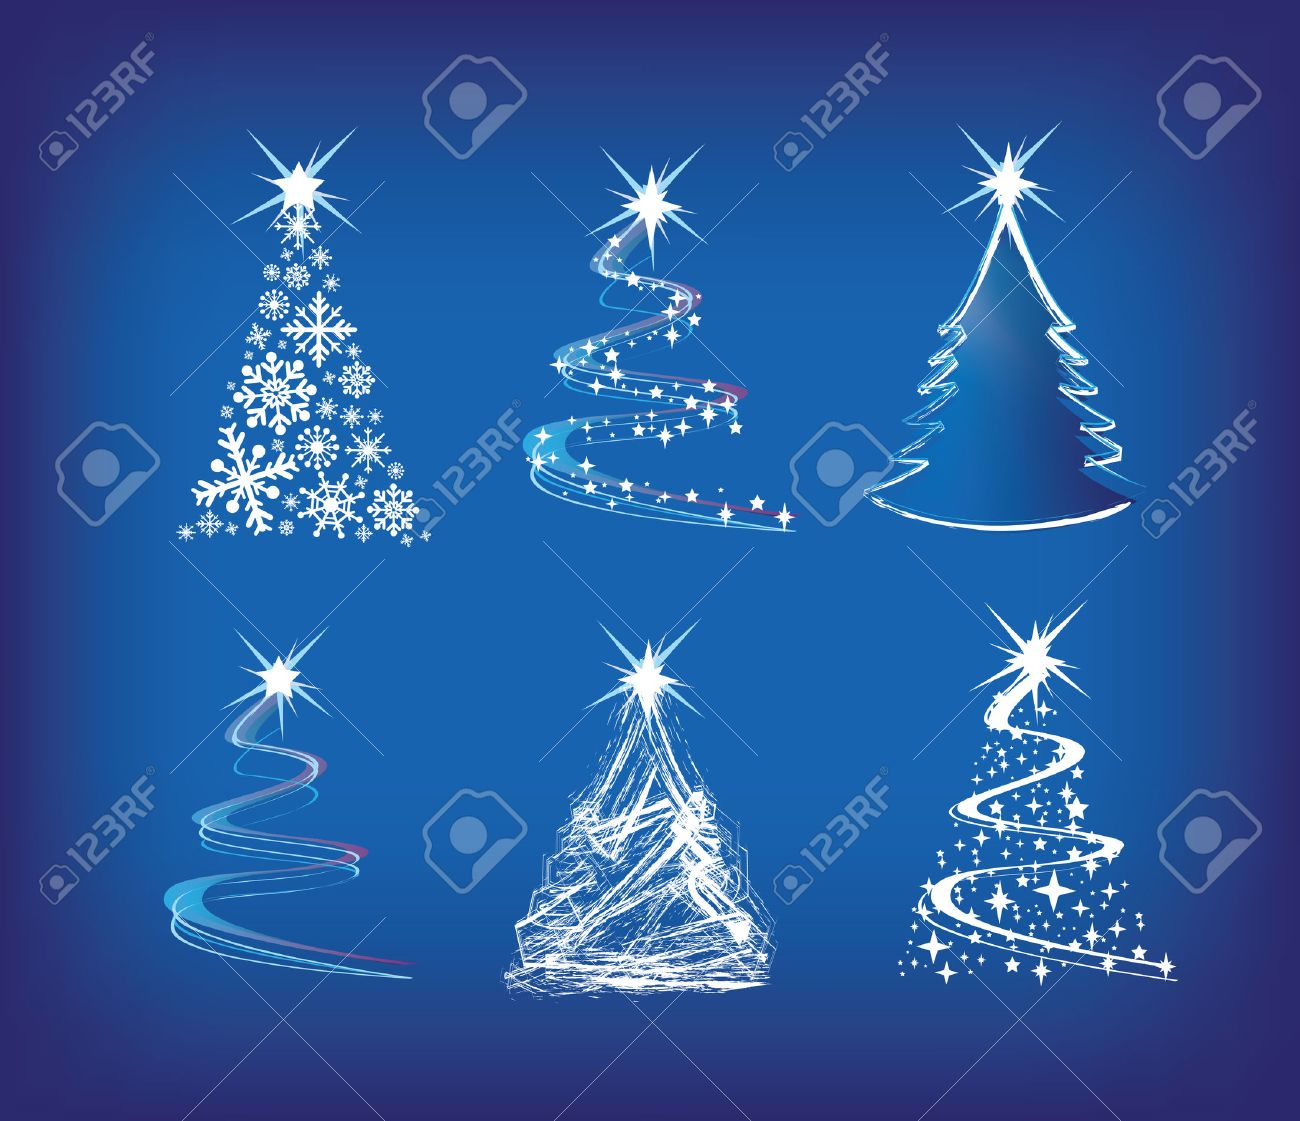 Christmas Trees Modern Illustration In A Loose Abstract Style Royalty Free Cliparts Vectors And Stock Illustration Image 5642414